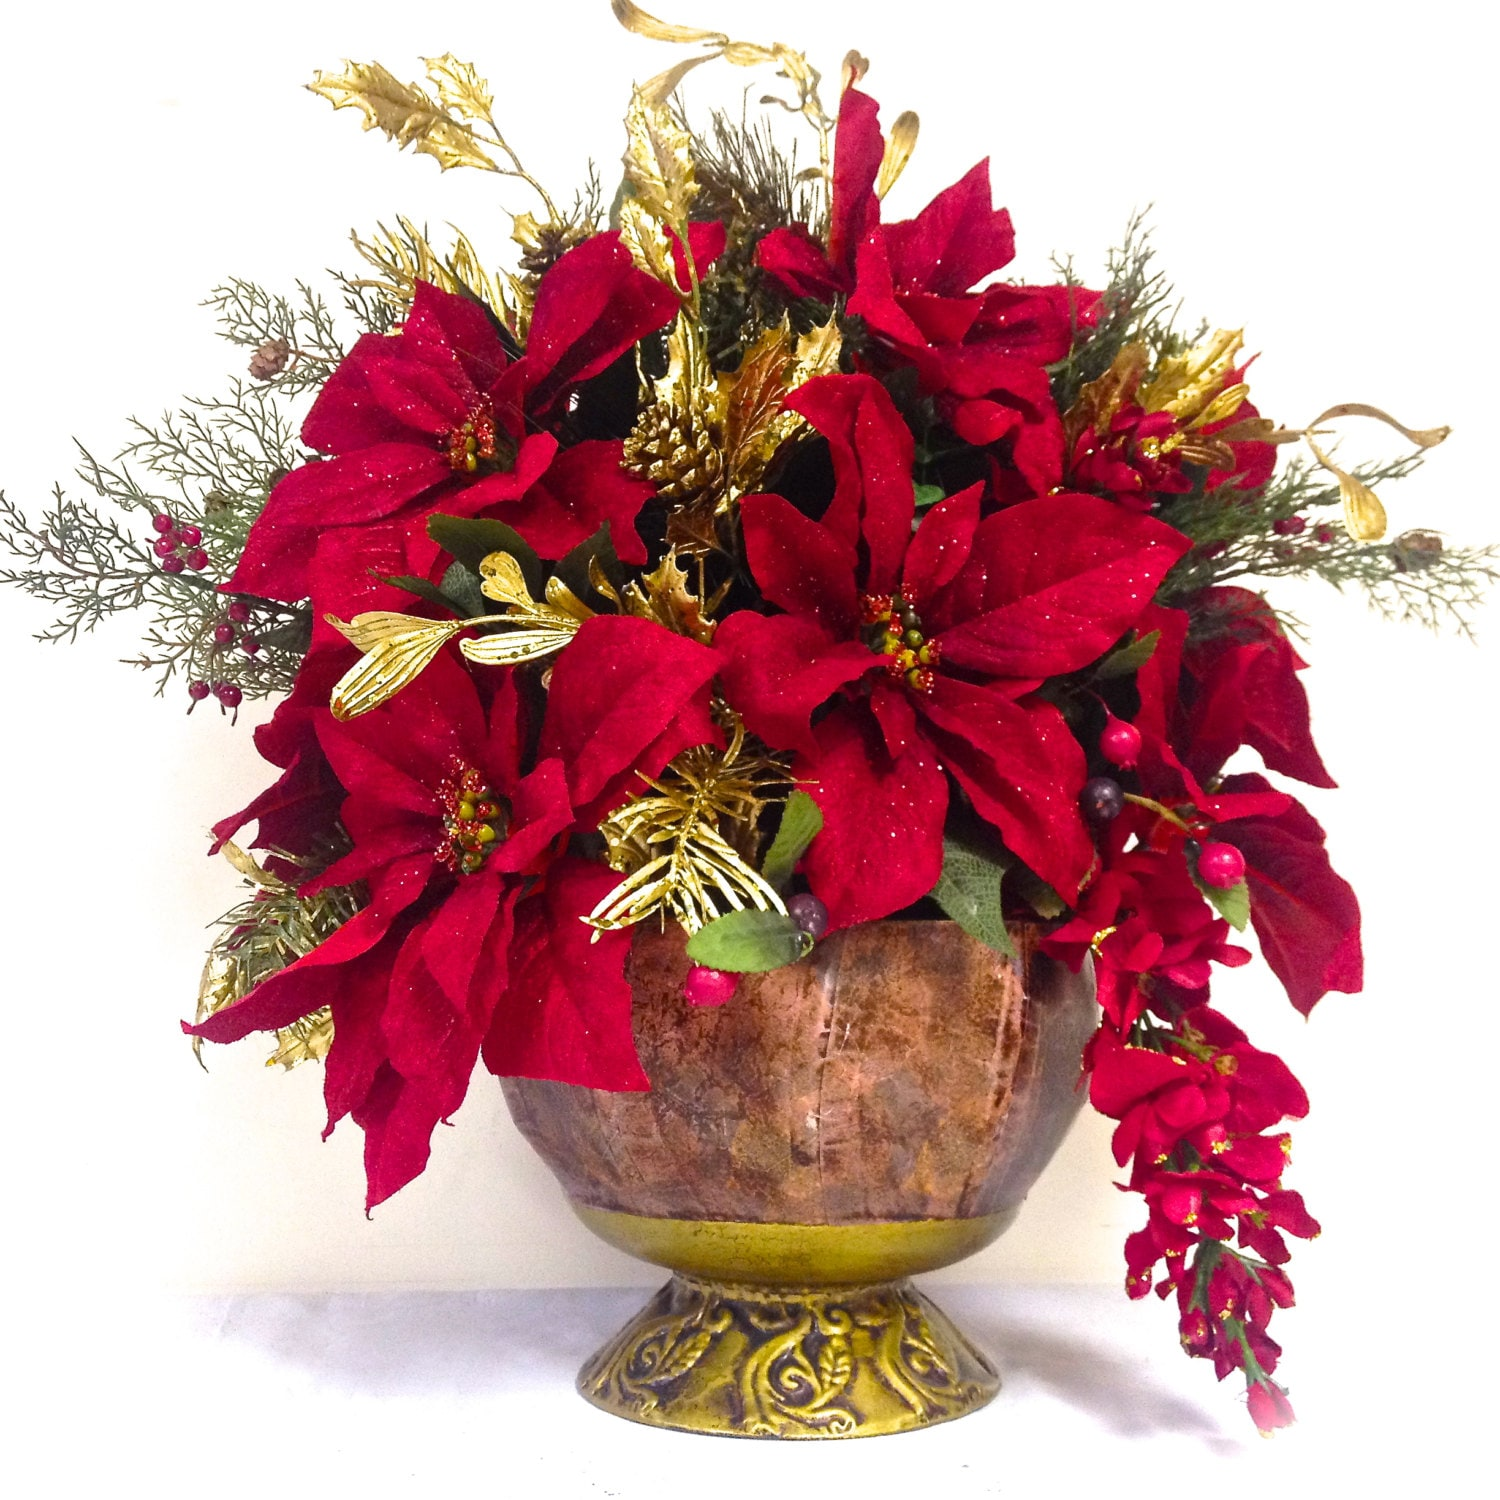 Red poinsettia arrangement christmas arrangement formal dining for Poinsettia arrangements